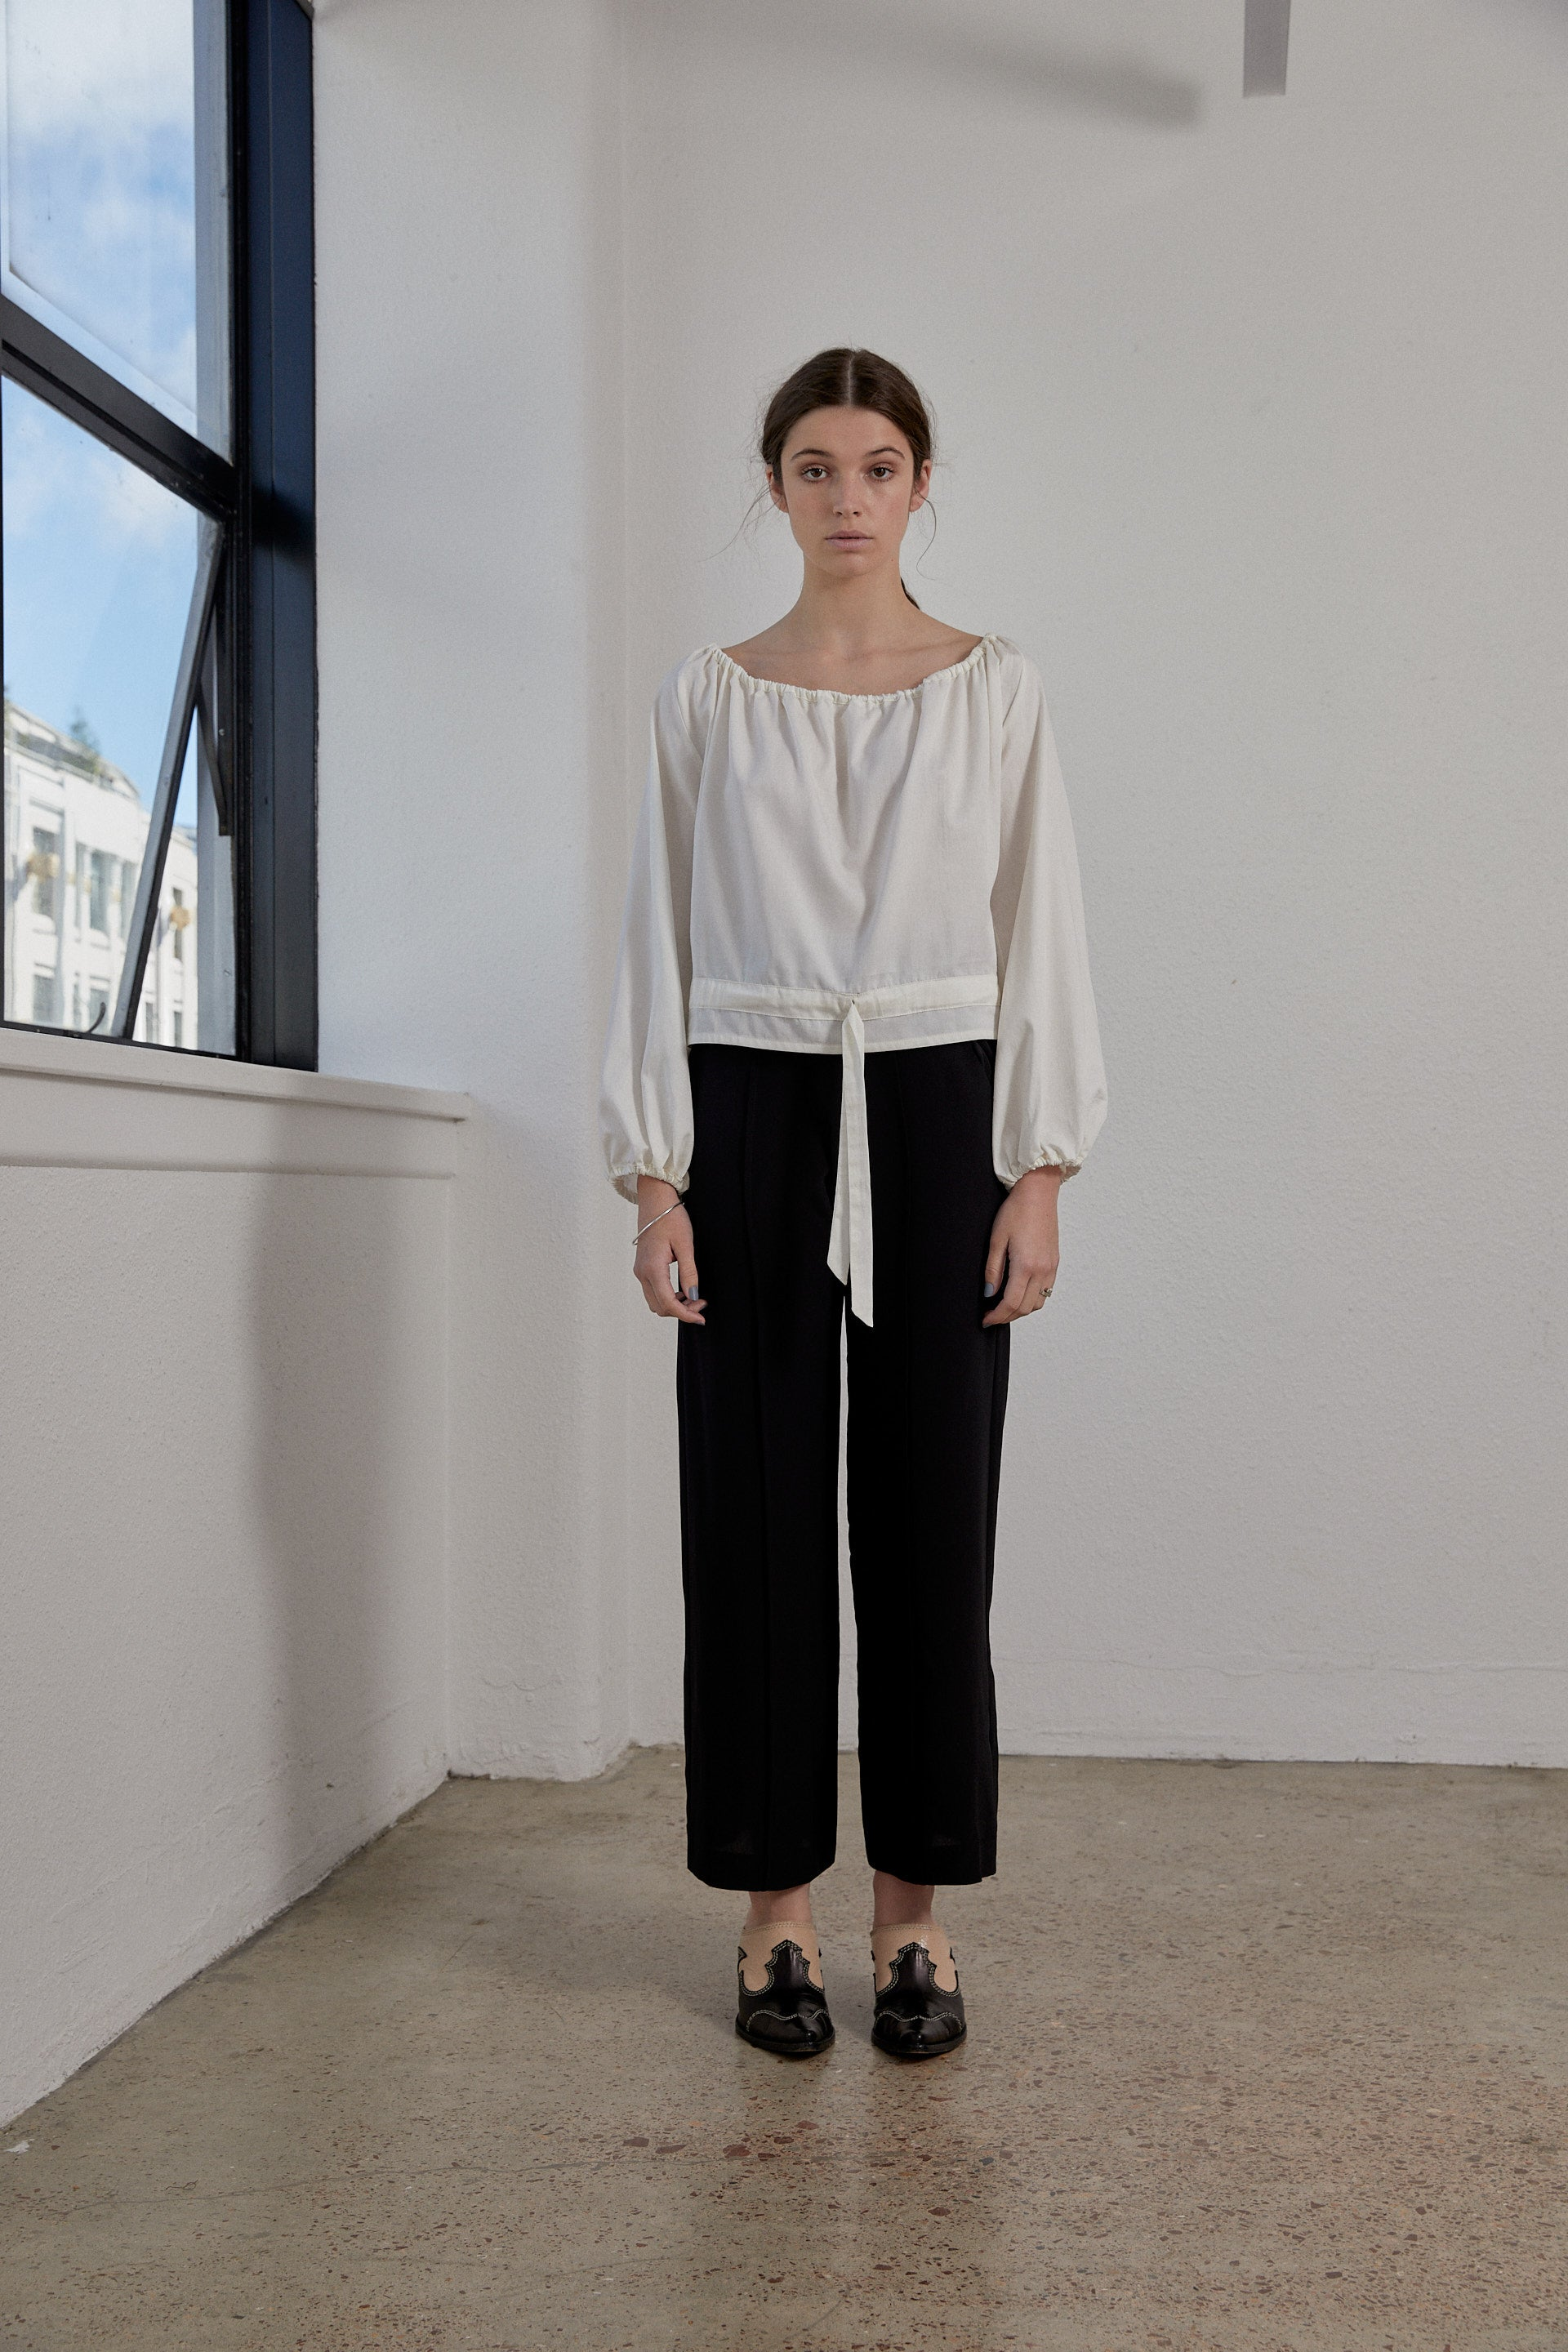 Eleanor Pant - Onyx Silk Crepe